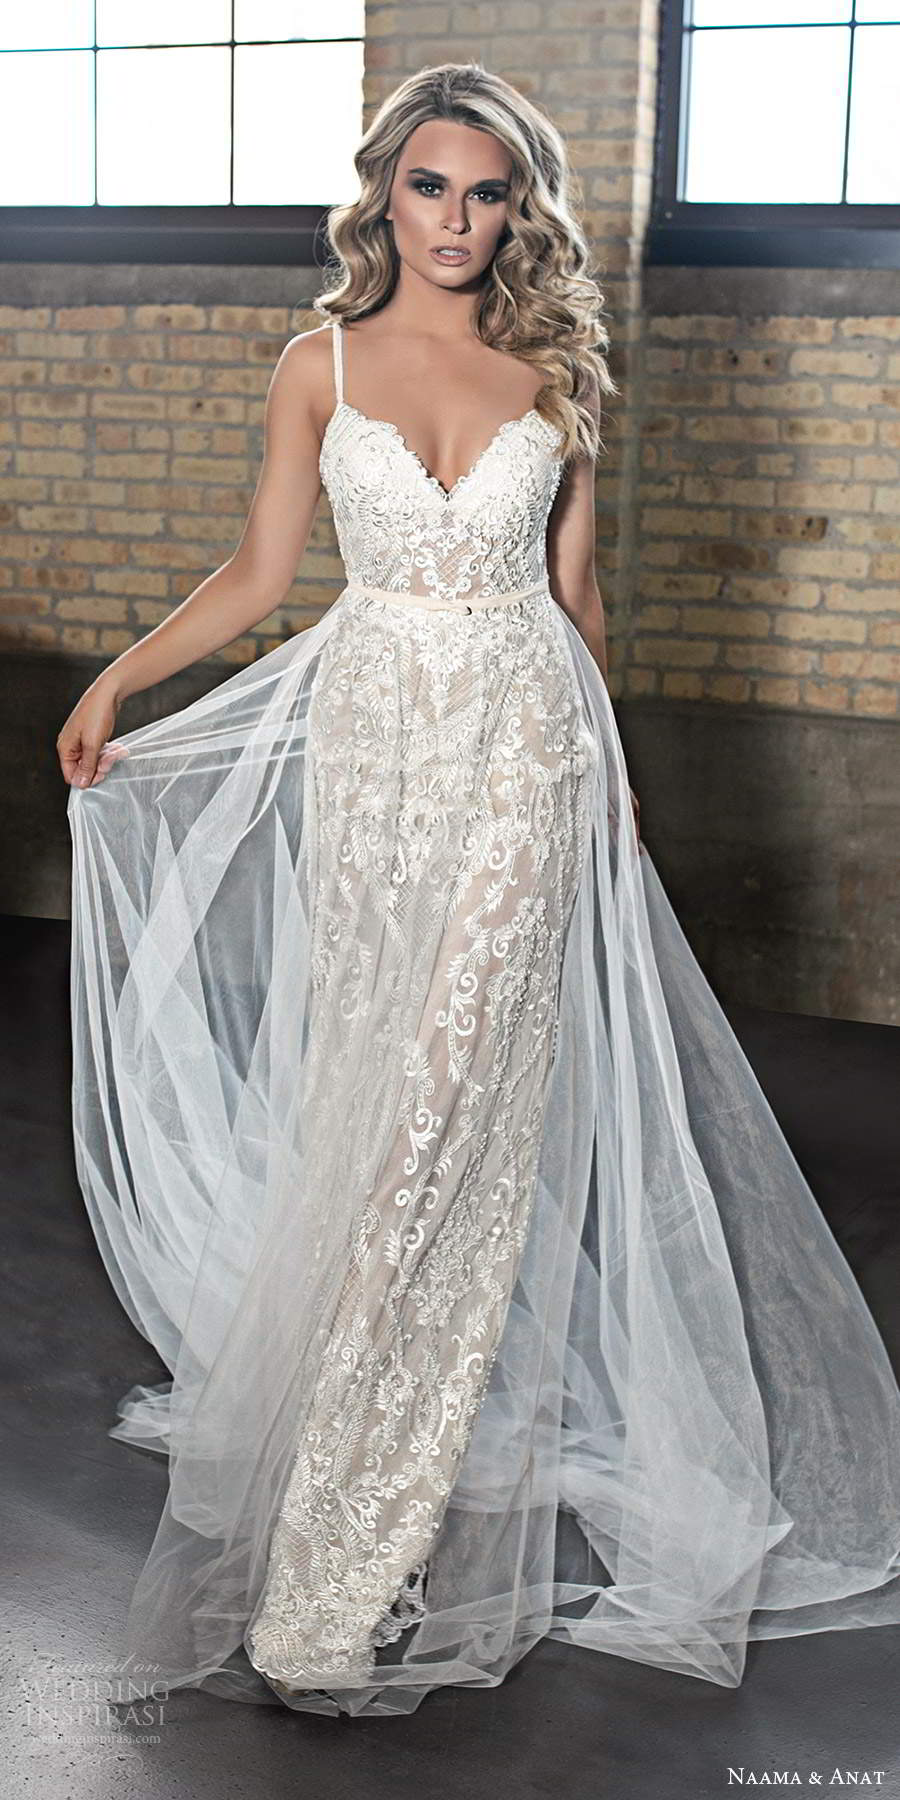 naama and anat 2020 silhouette bridal sleeveless thin straps sweetheart neckline heavily embellished lace a line wedding dress chapel train (7) mv